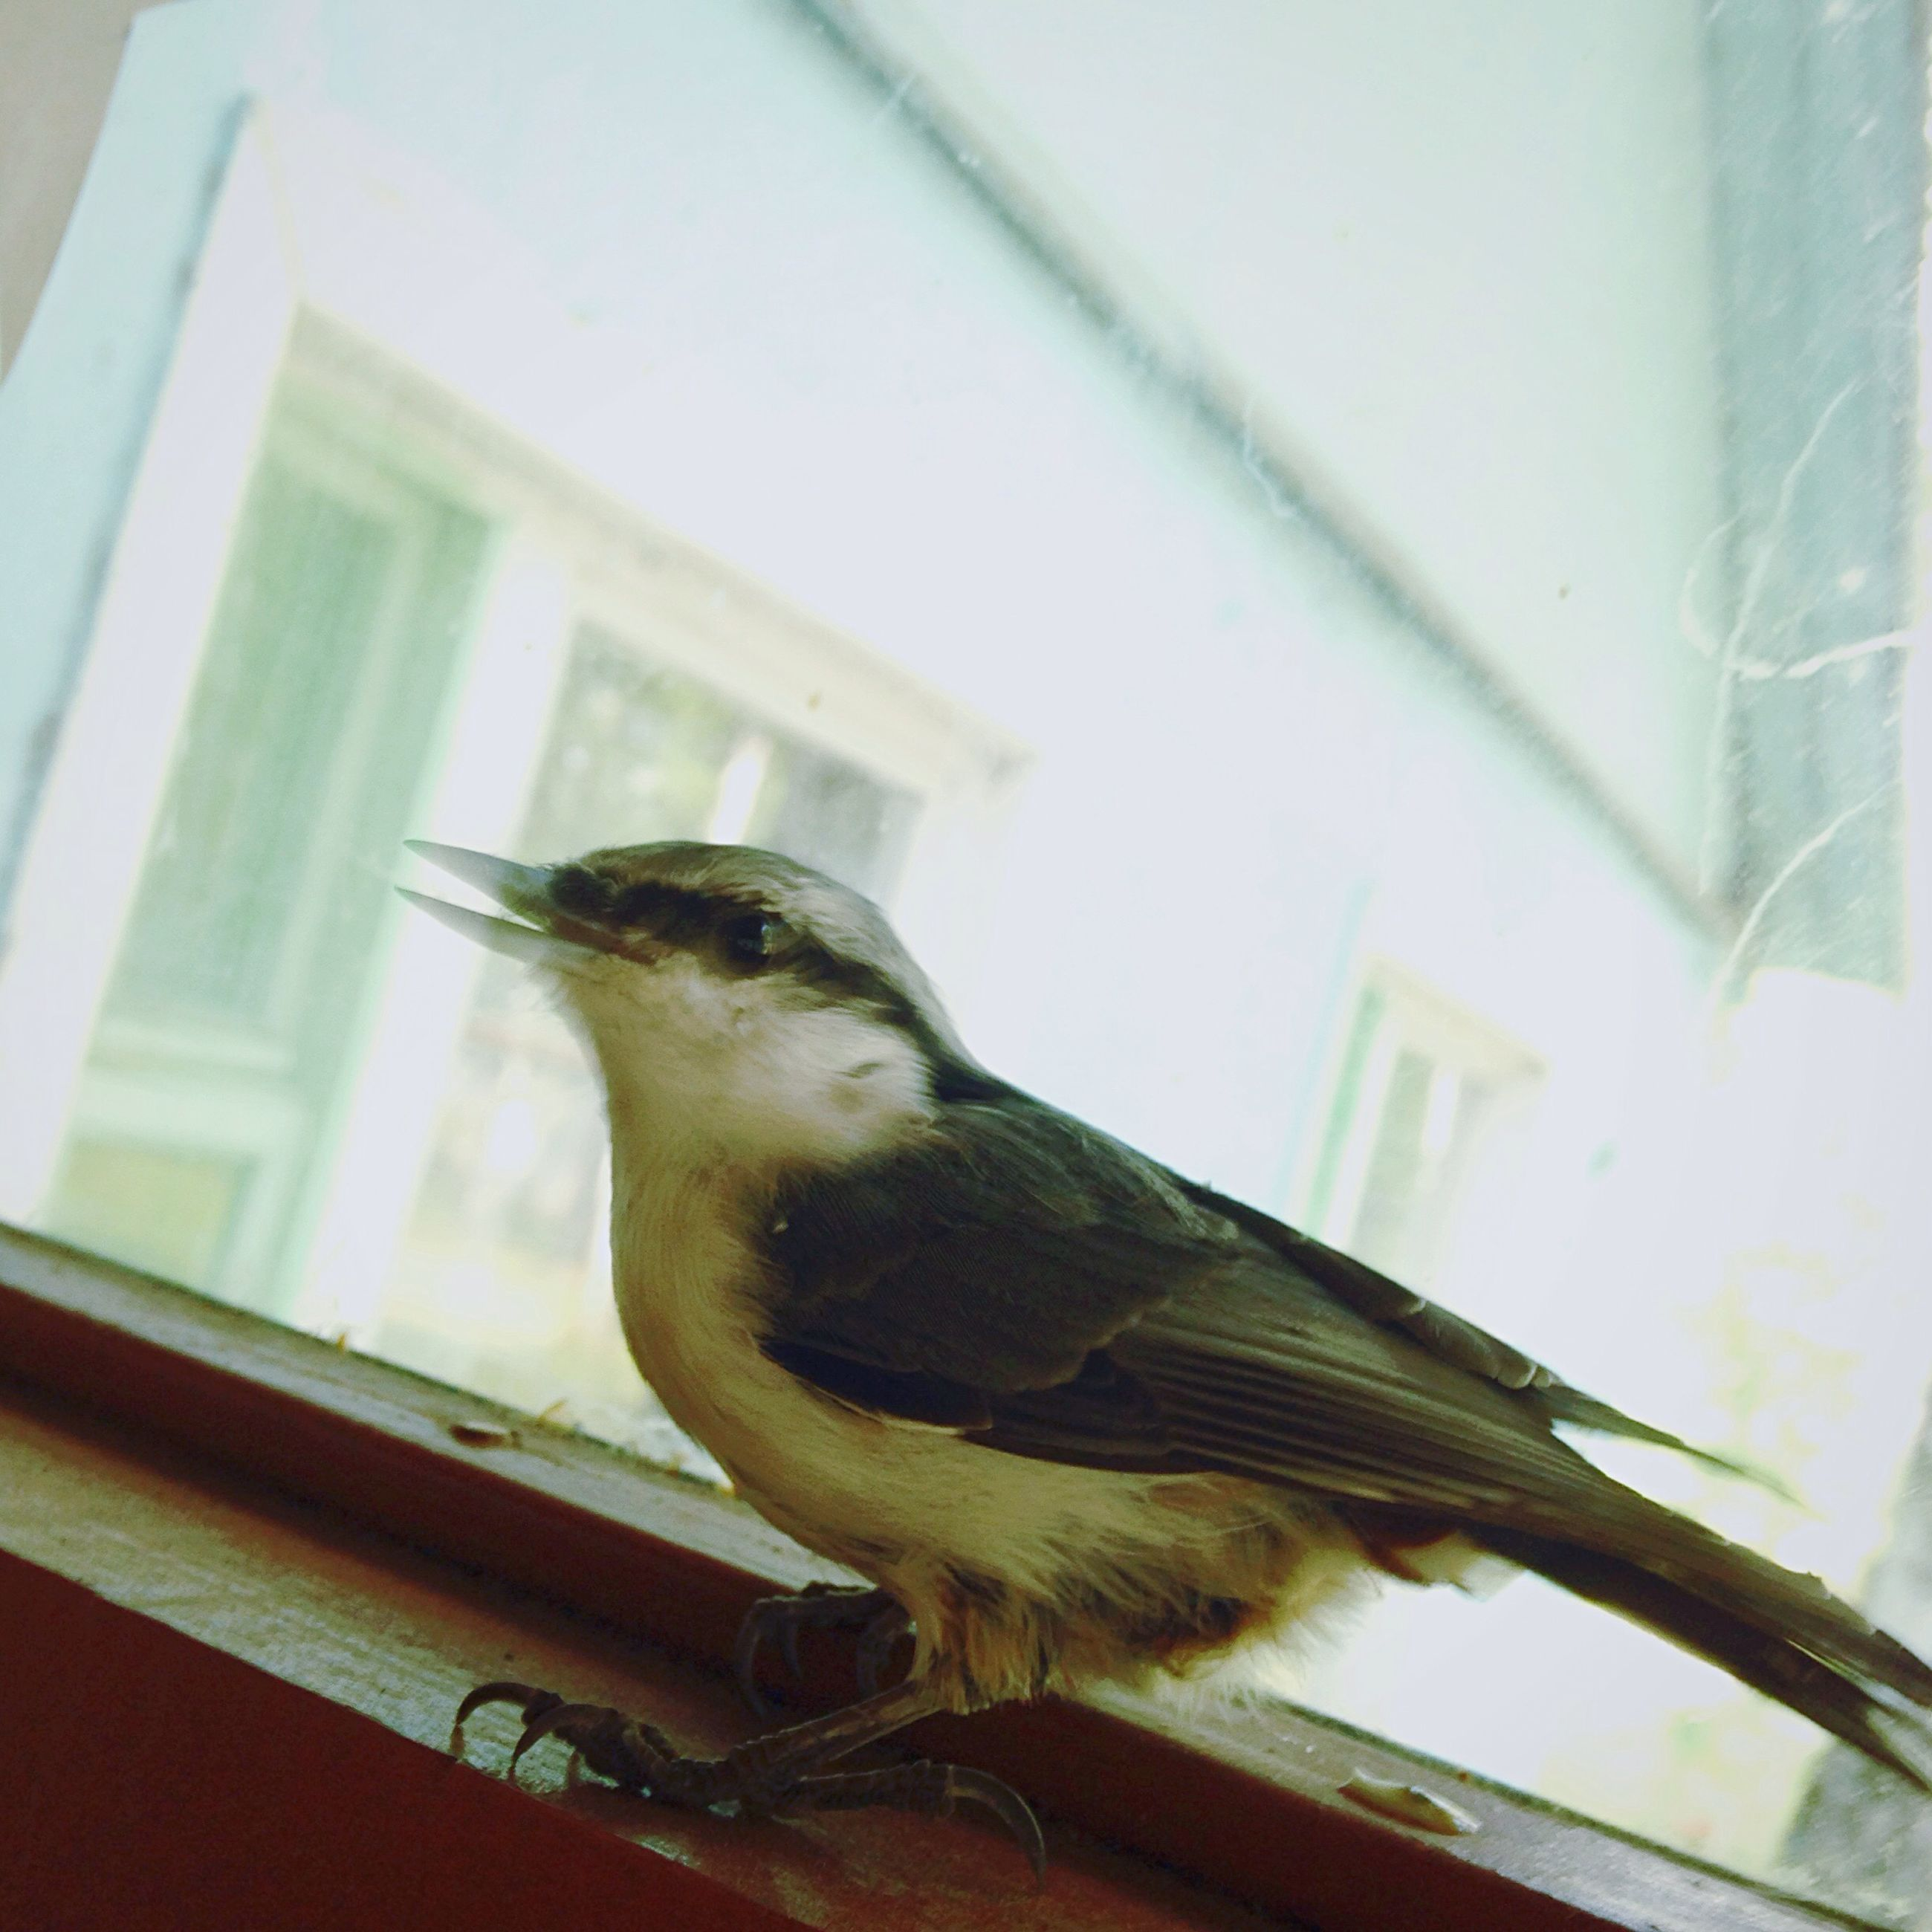 animal themes, one animal, bird, animals in the wild, wildlife, perching, side view, window, zoology, focus on foreground, beak, selective focus, animal head, no people